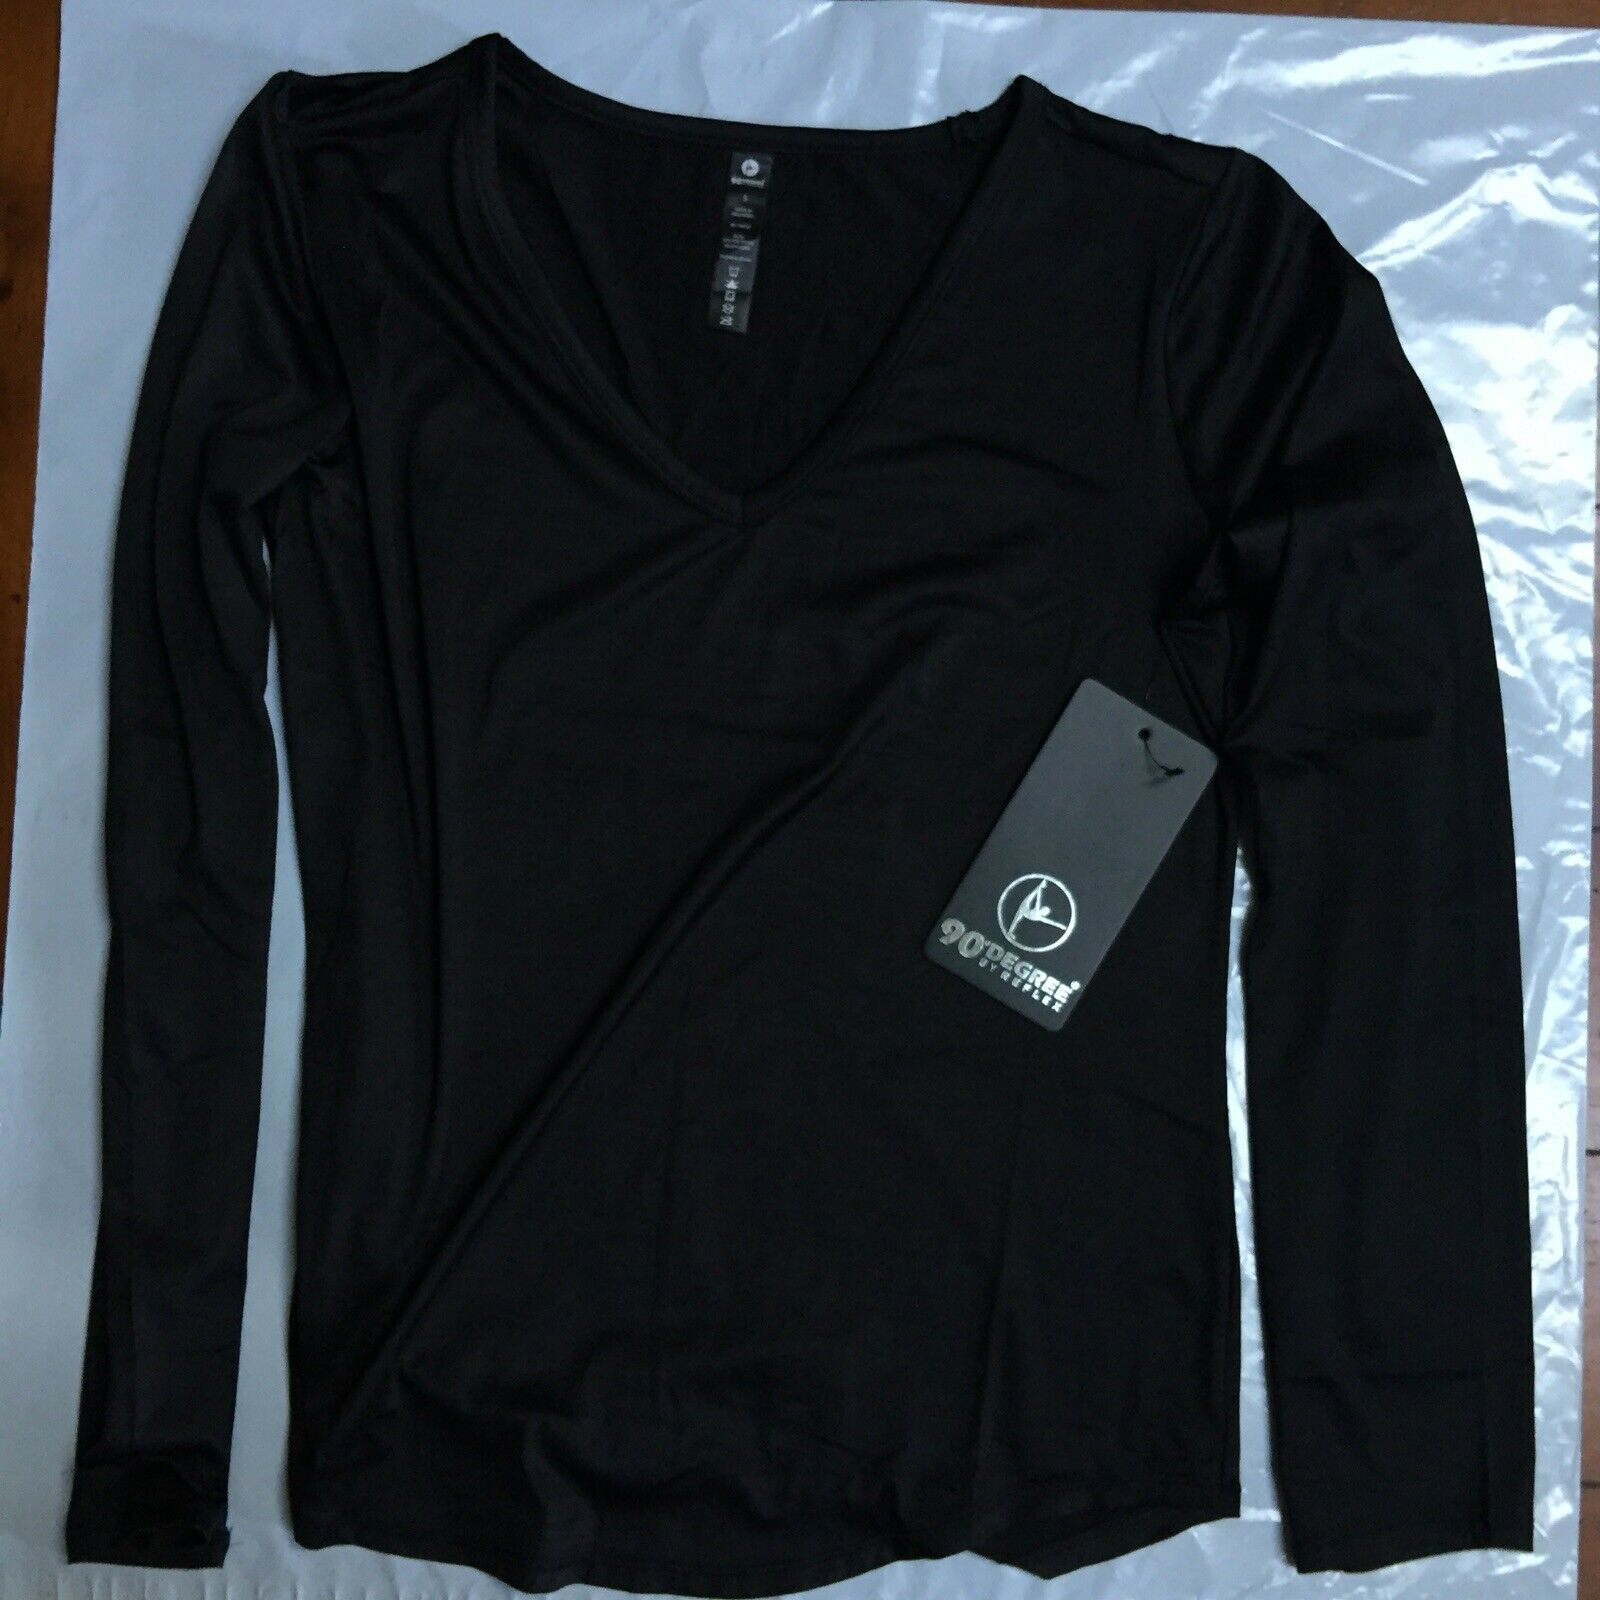 90 degree by reflex Athletic black long sleeve size small top shirt NWT